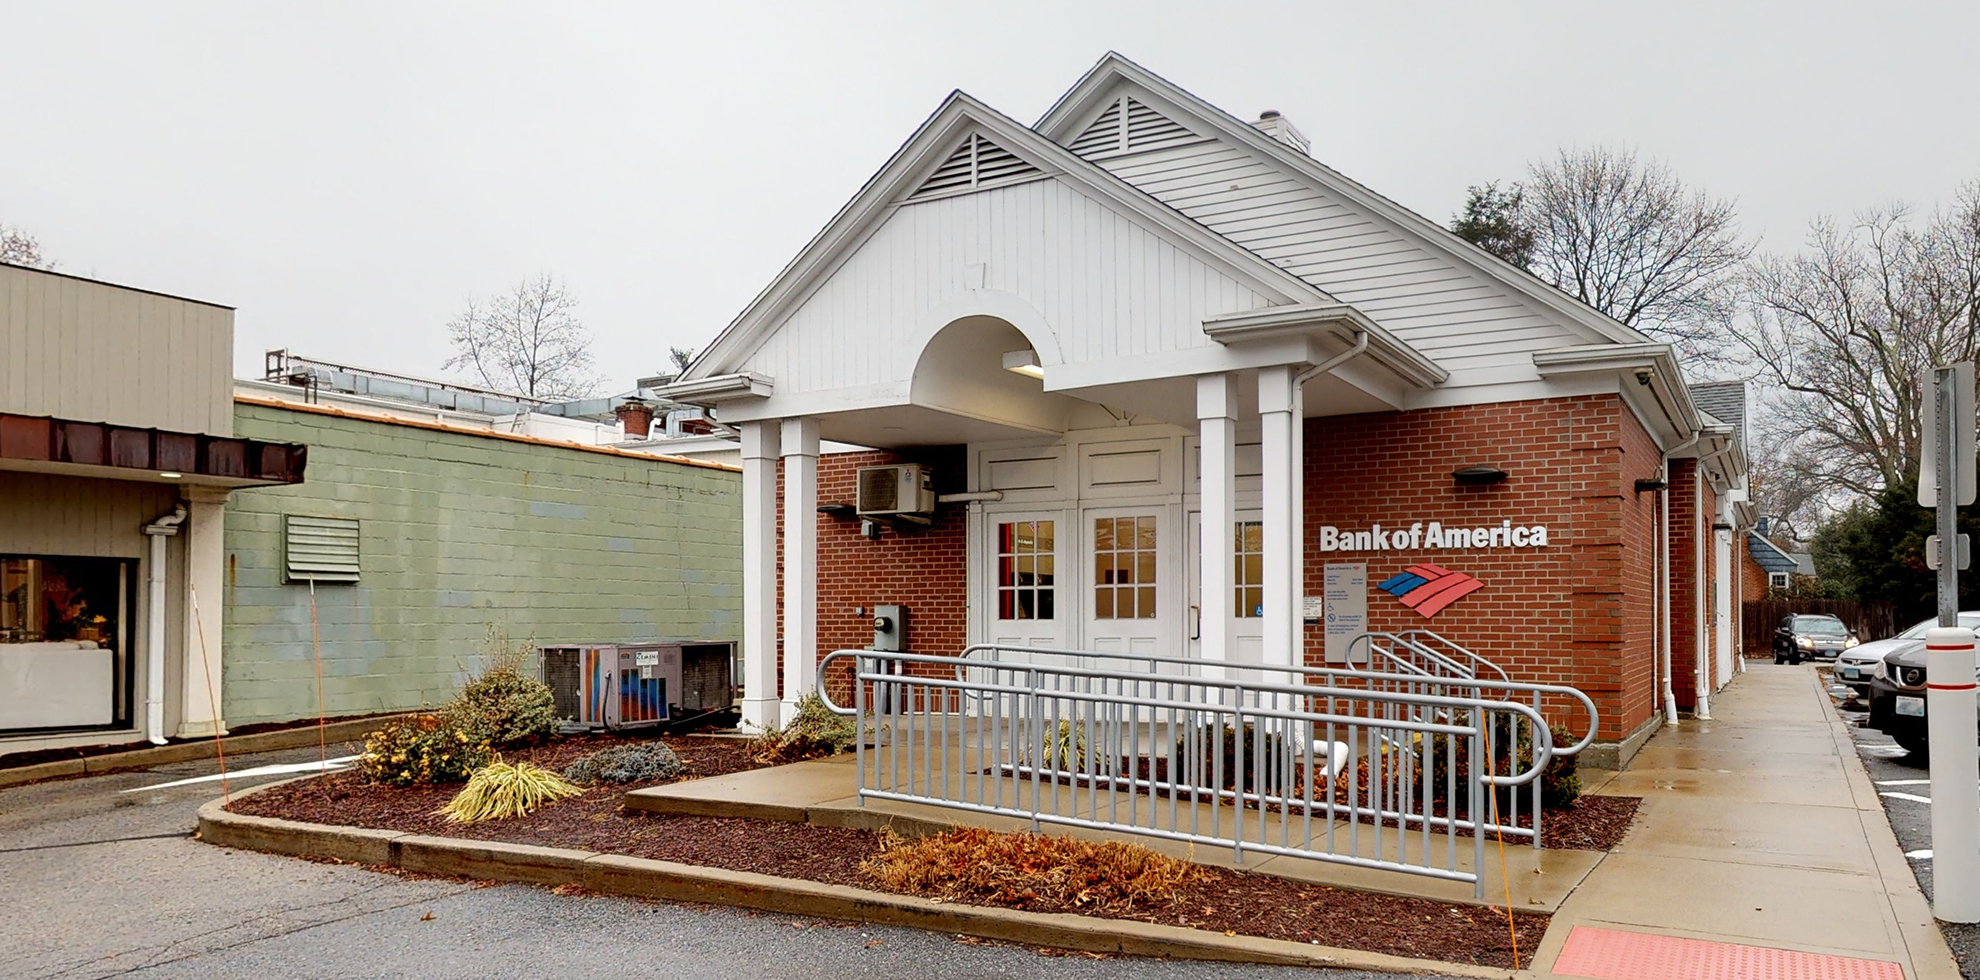 Bank of America financial center with drive-thru ATM | 1815 Post Rd E, Westport, CT 06880